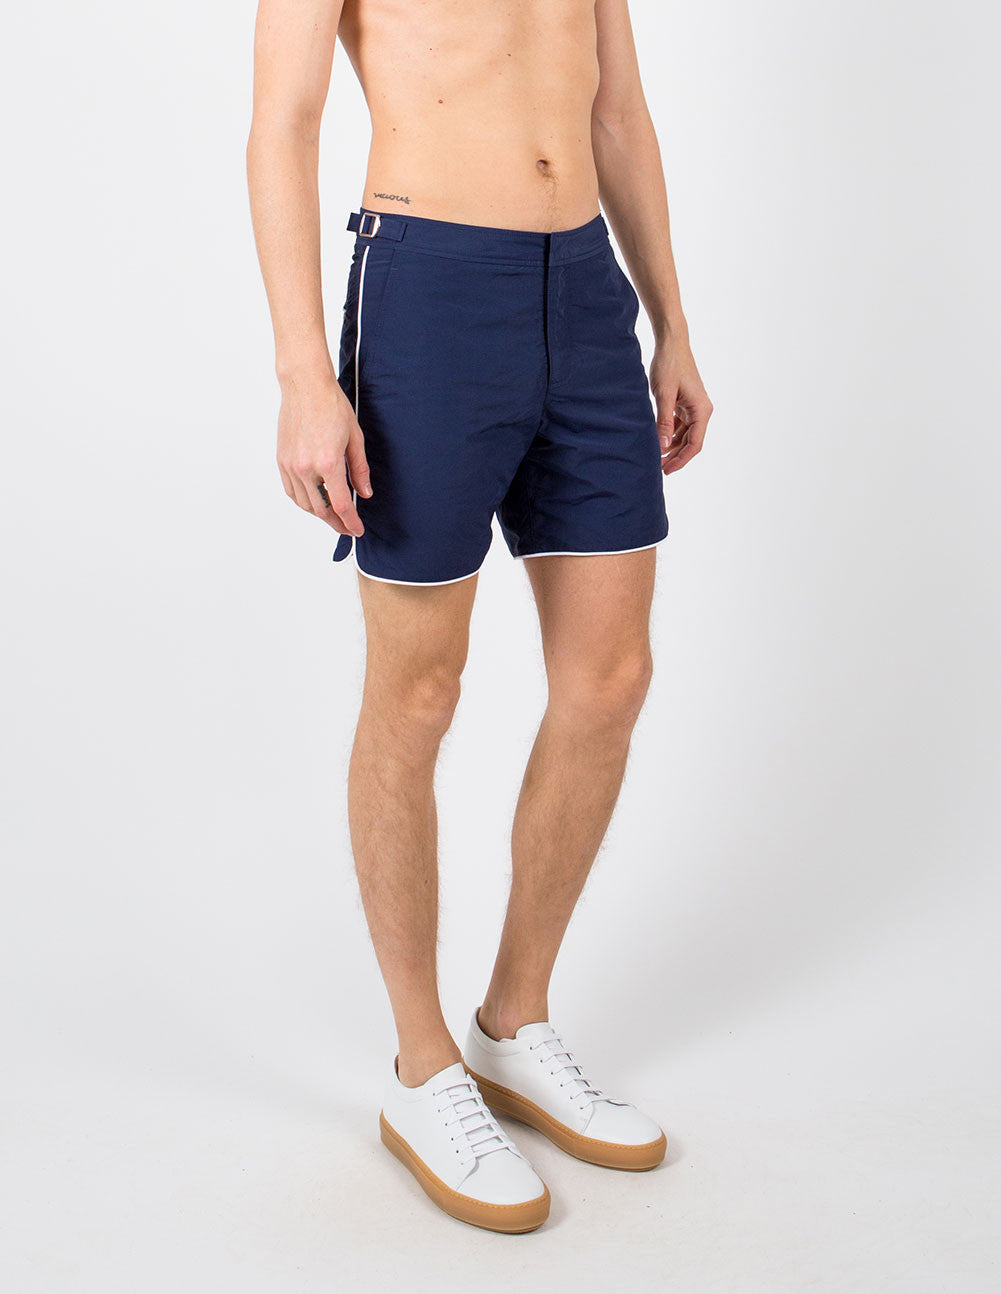 Bulldog Piping Swim Short